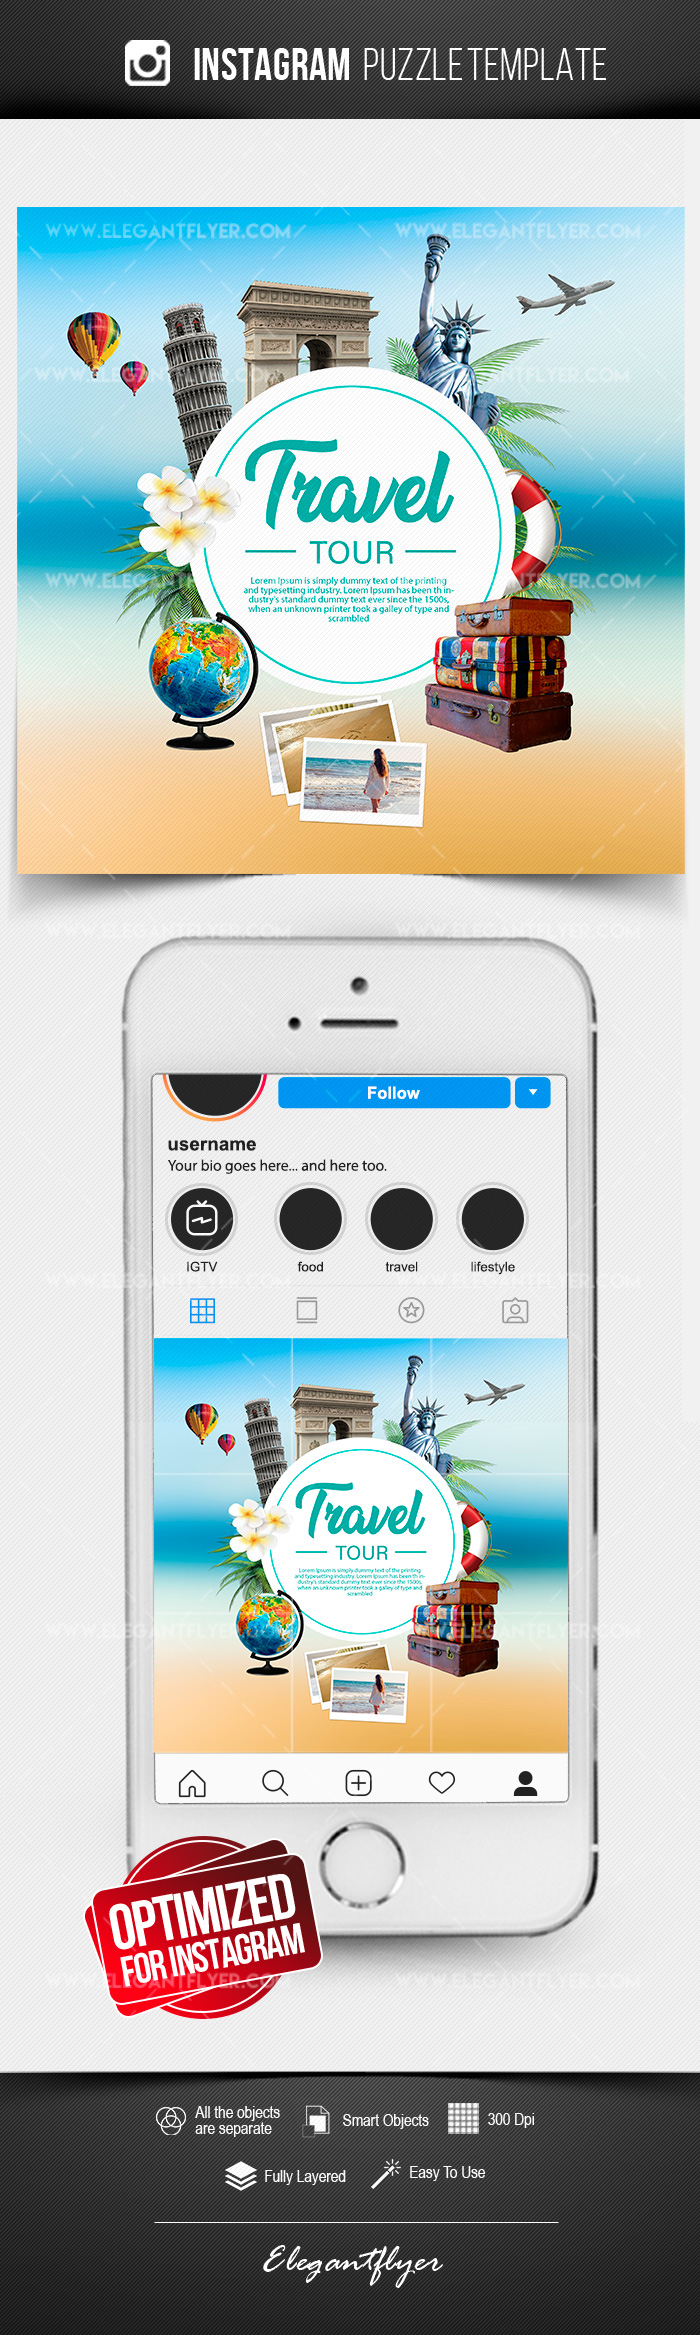 Travel – Free Instagram PSD Puzzle